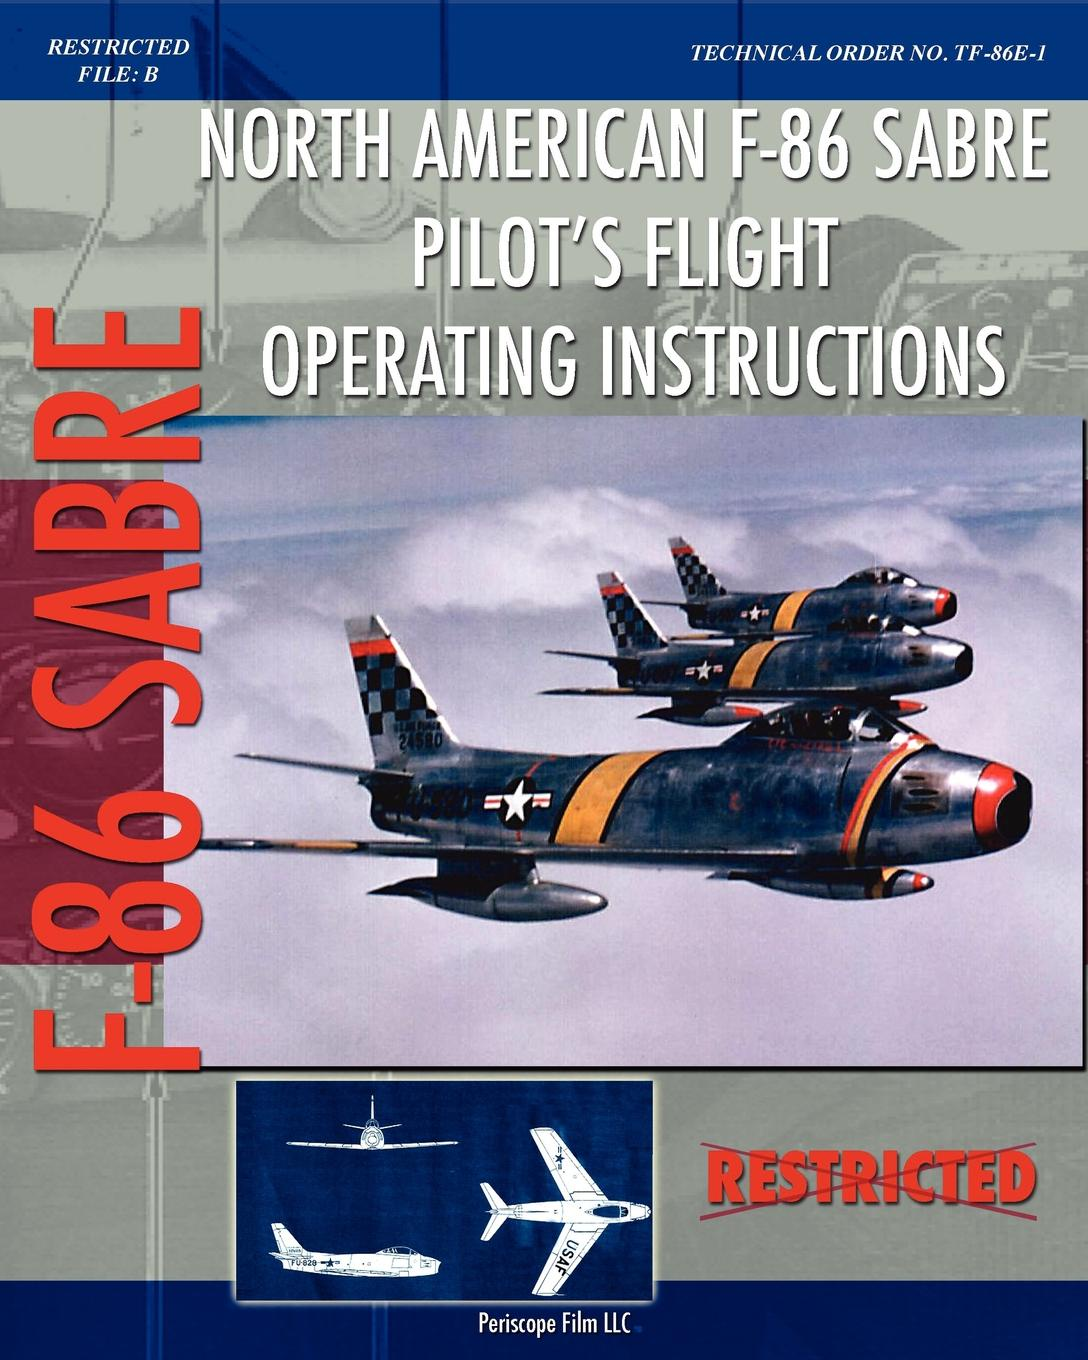 United States Air Force North American F-86 Sabre Pilot's Flight Operating Instructions